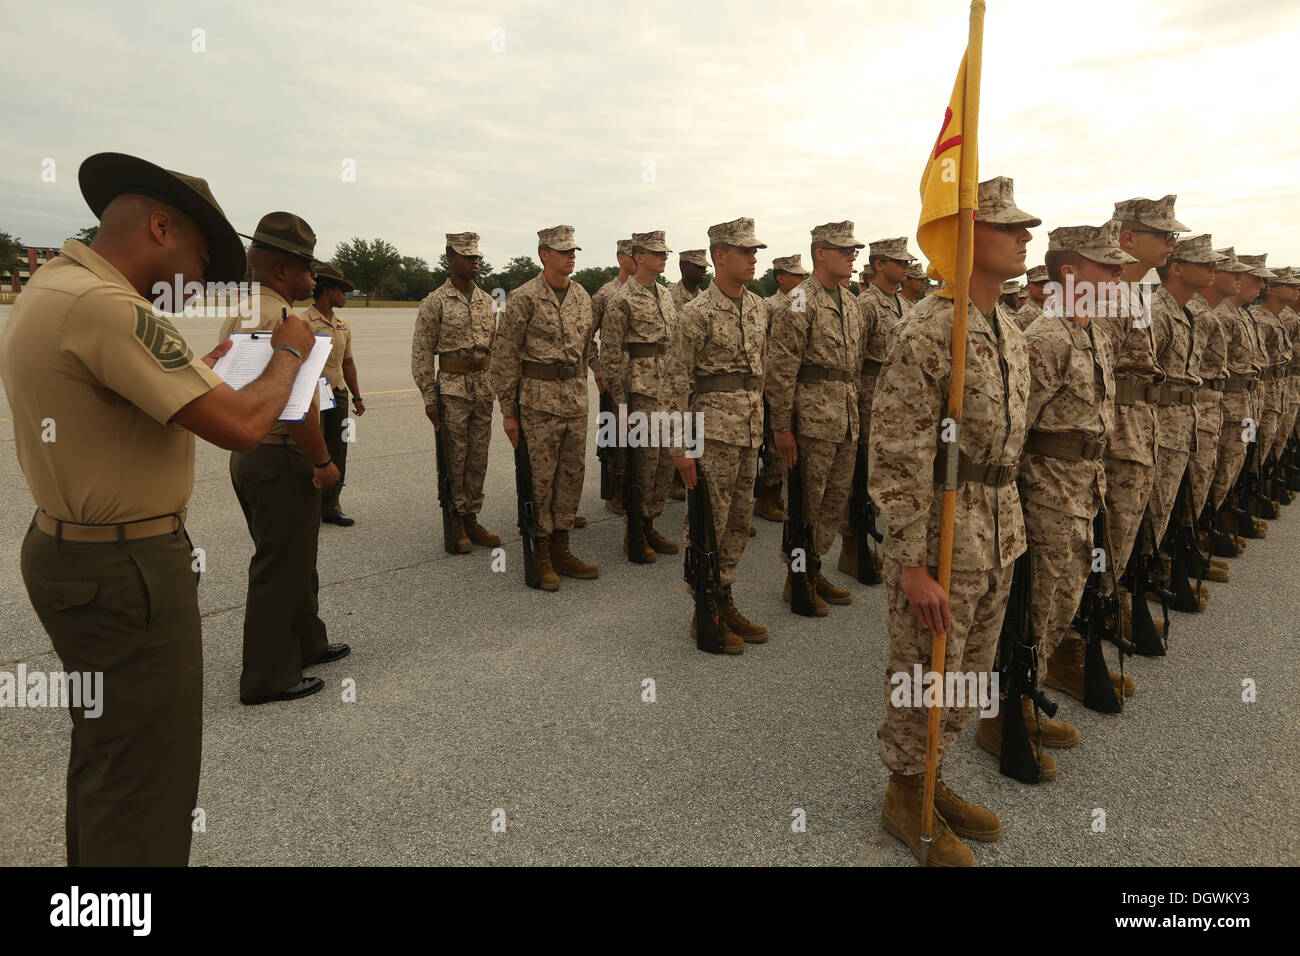 Drillmasters, experts on the Marine Corps Drill and Ceremonies Manual,  grade recruits of Platoon 3102, Lima Company, 3rd Recruit